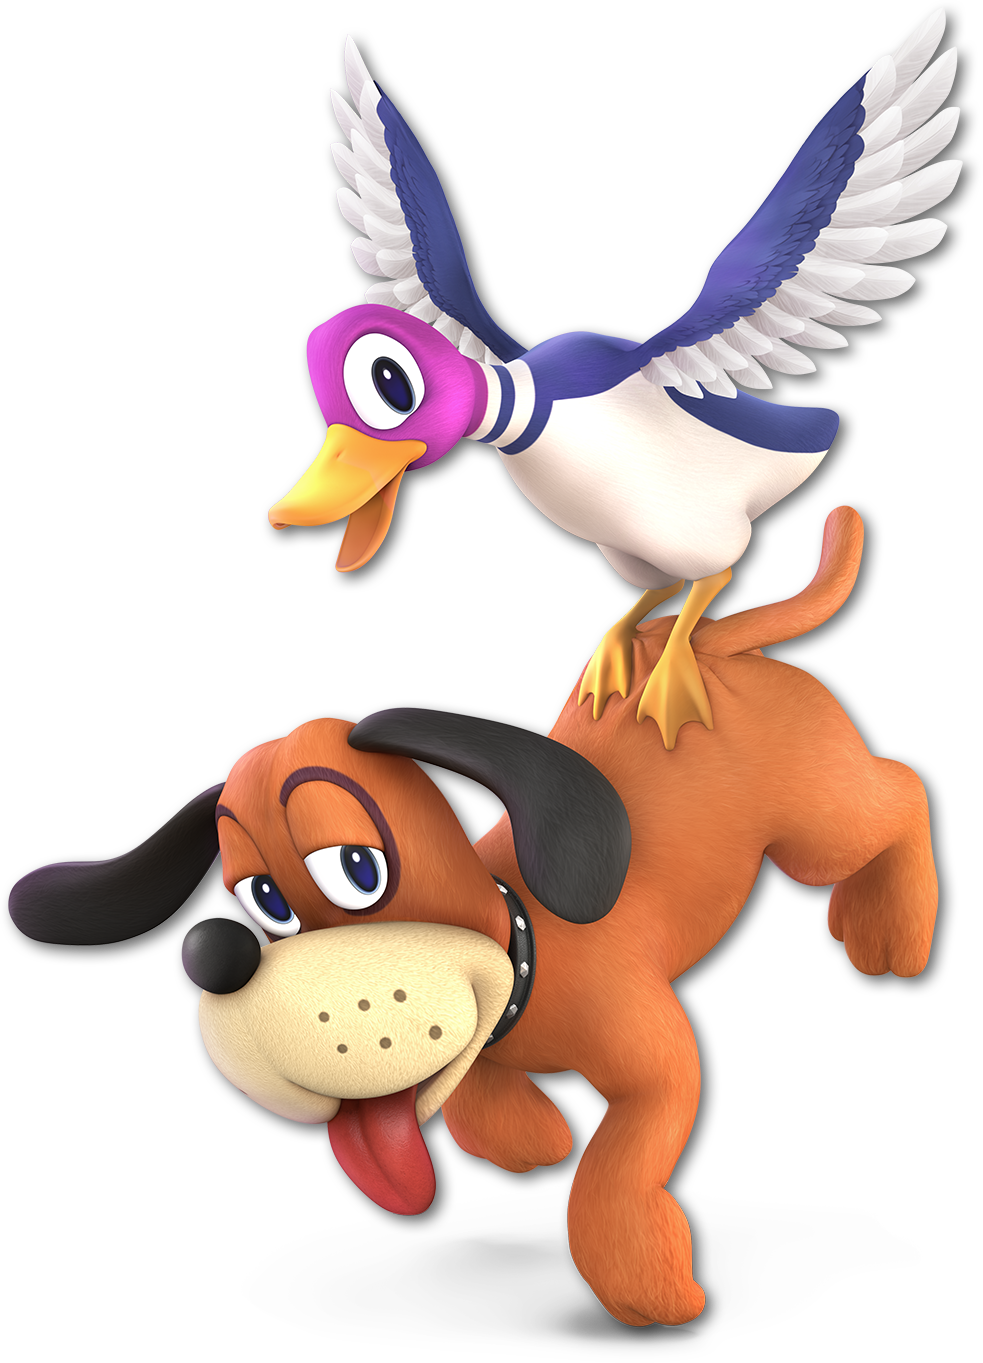 Duck Hunt As They Appear In Super Smash Bros Ultimate Smash Bros Super Smash Bros Smash